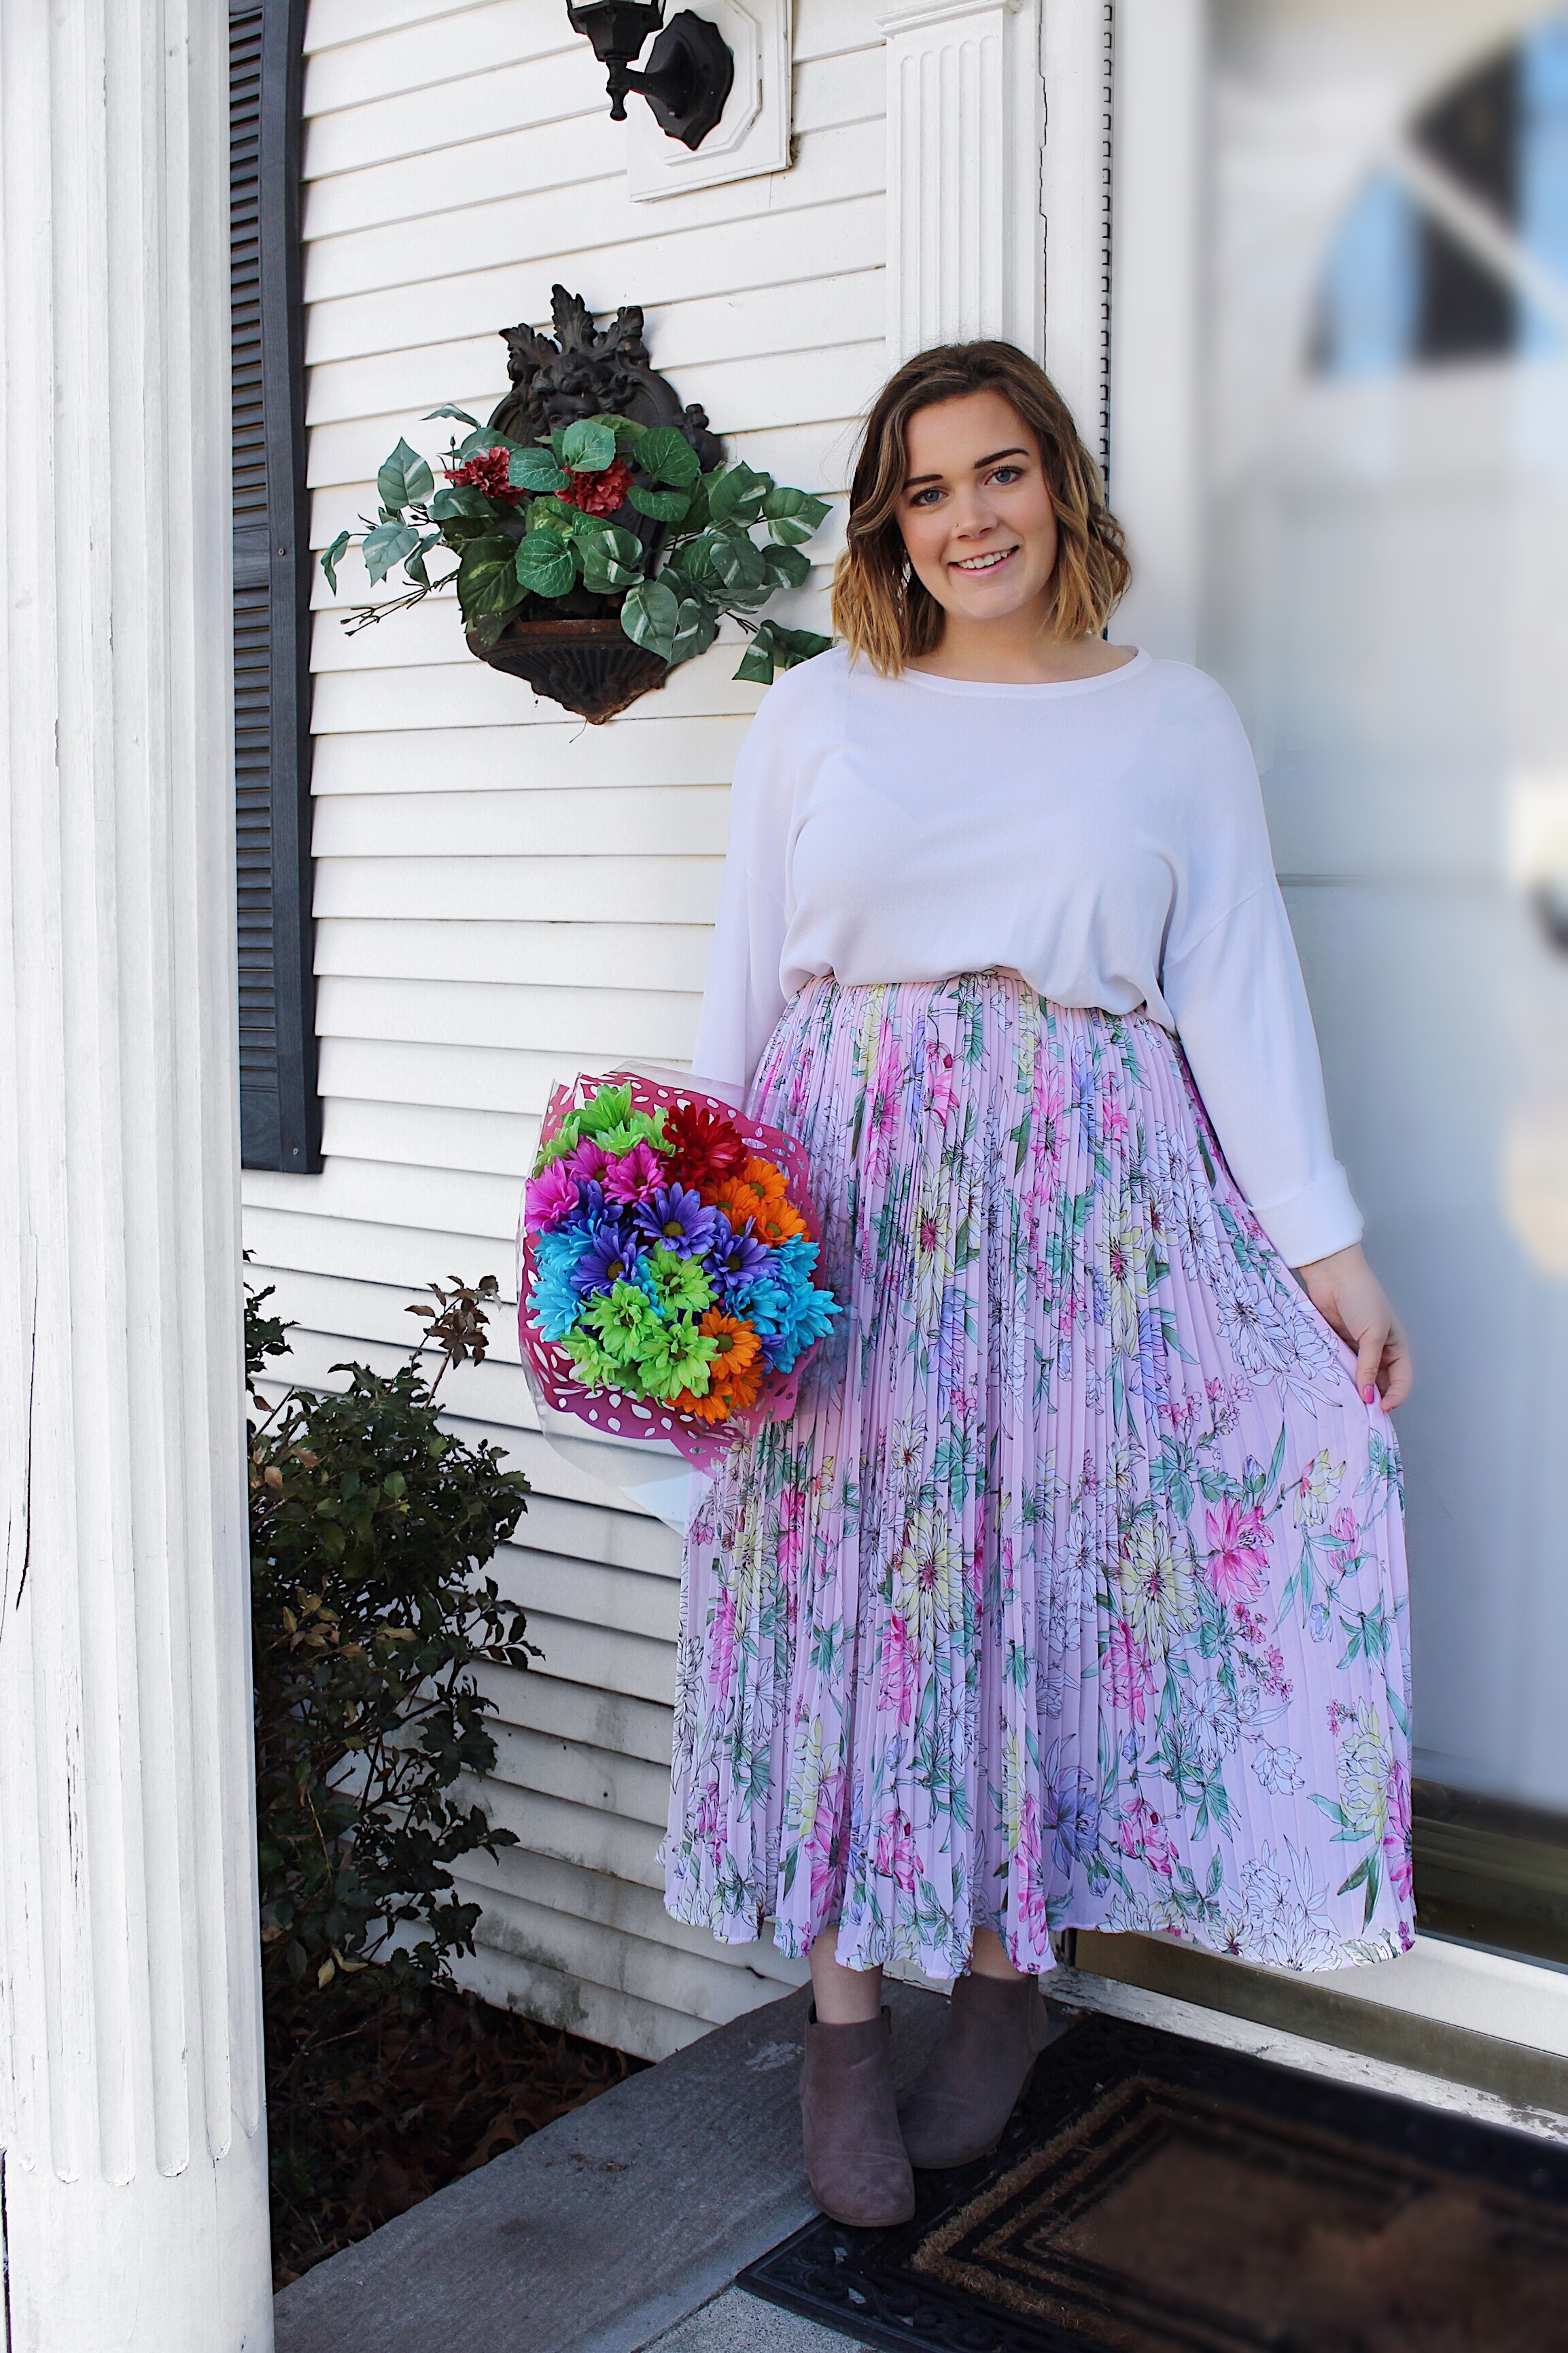 041c61633b I am absolutely obsessed with this outfit and I am so happy to say this  skirt is on sale for  19.99! Let s get into this outfit post! 💕🌼 🌸💐